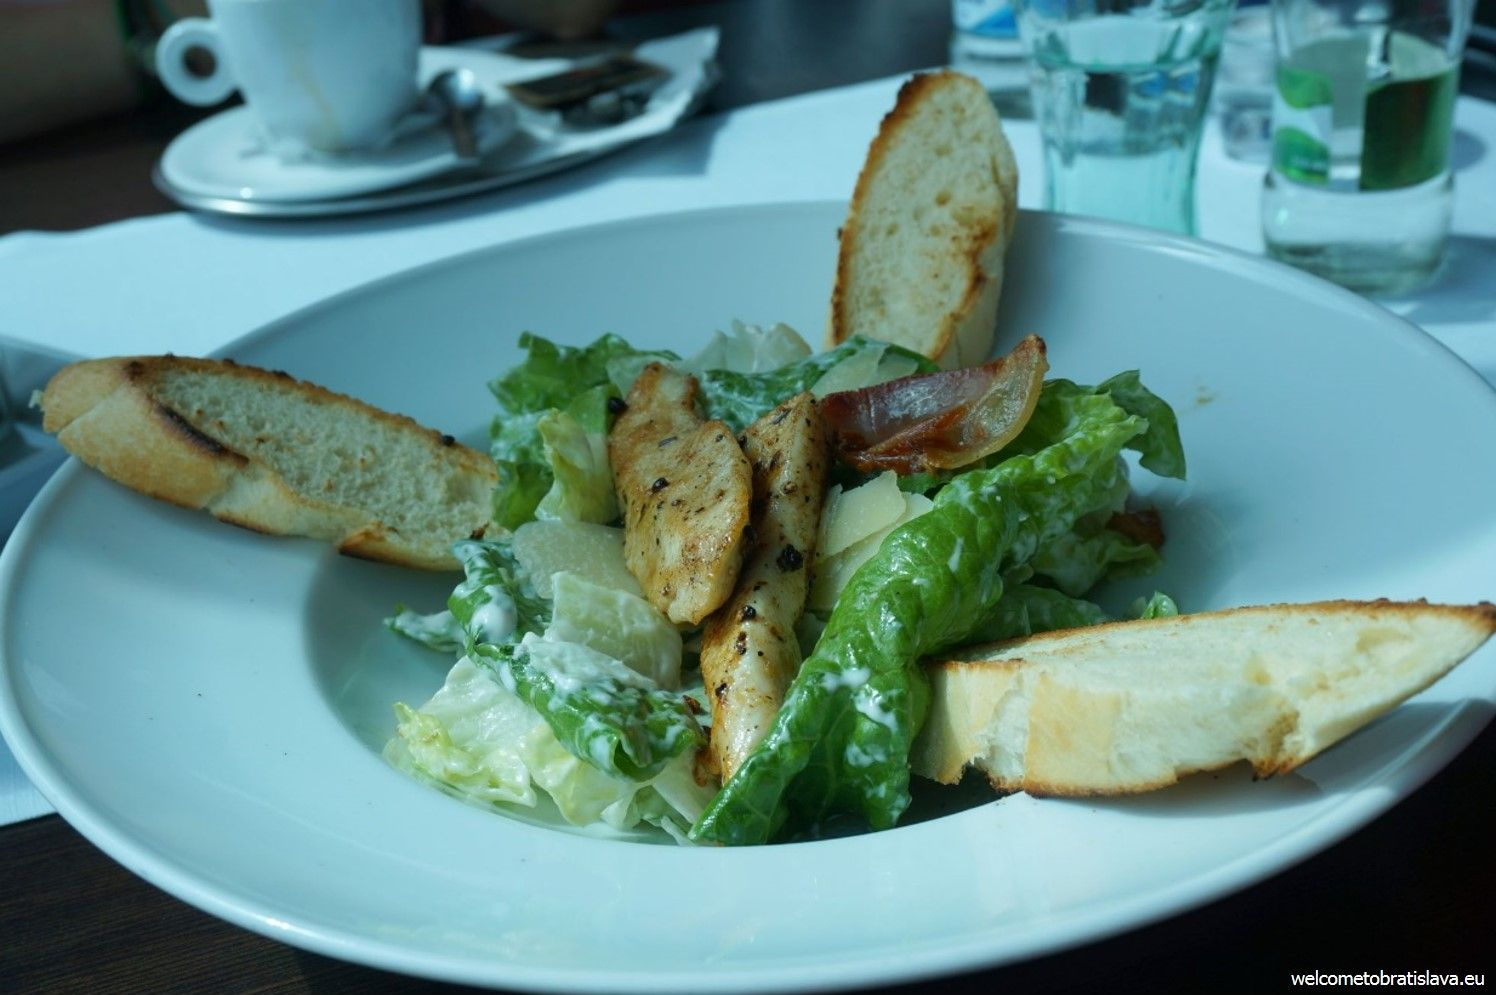 Dining at the Brasseria